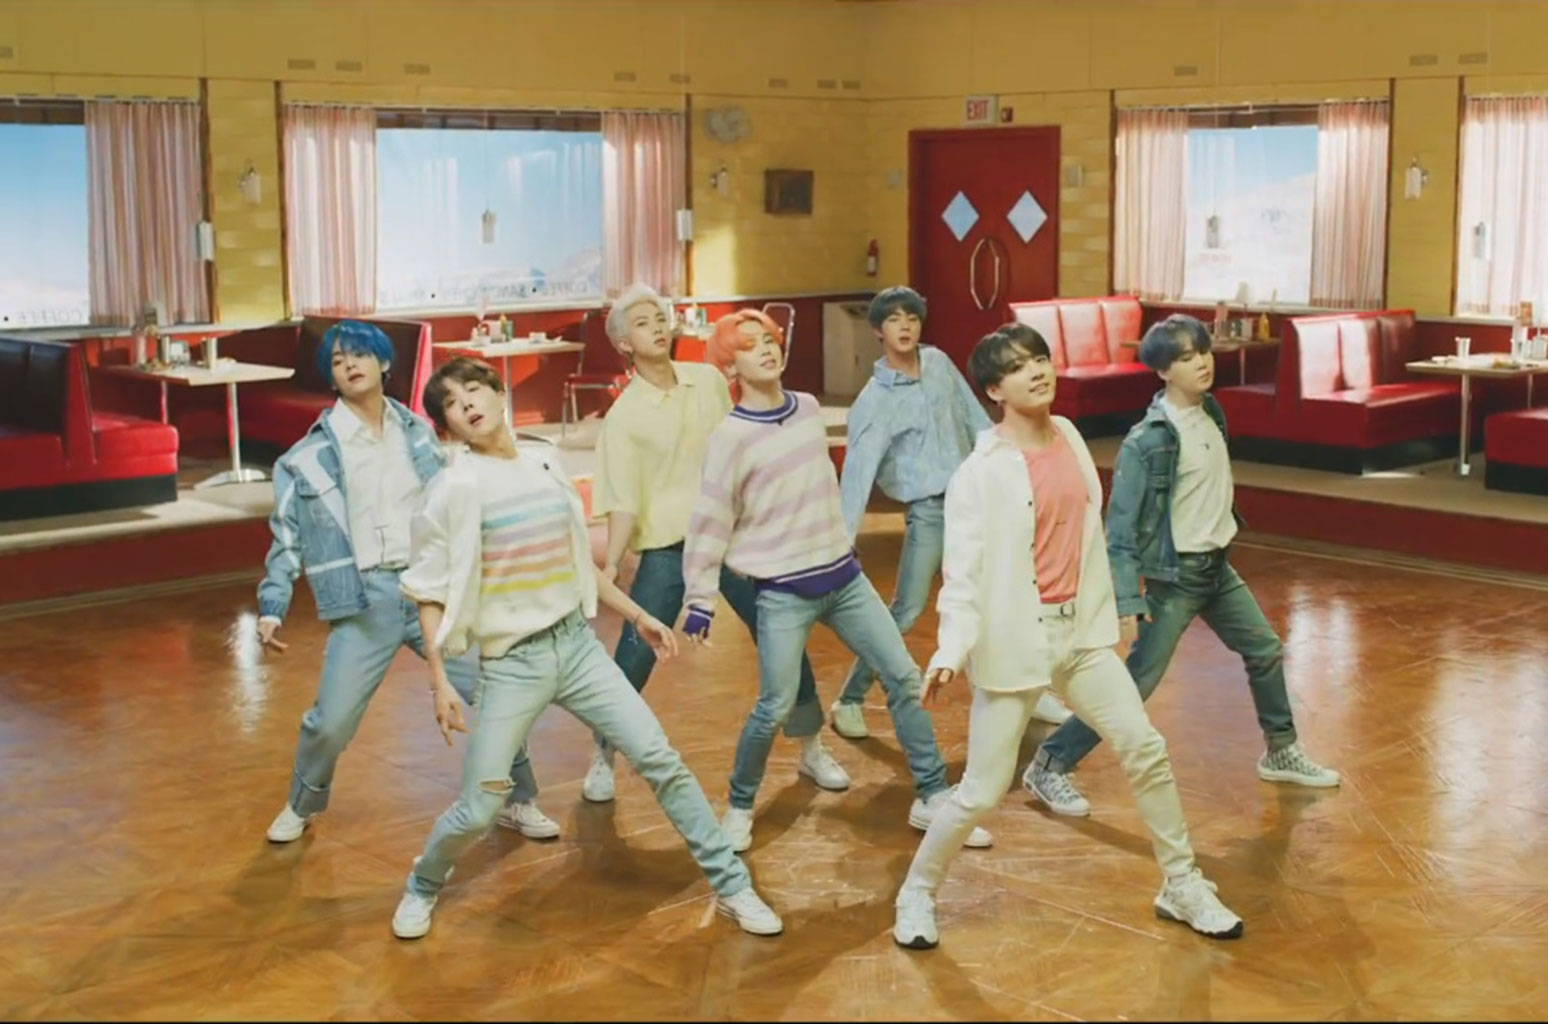 BTS' 'Boy With Luv' Fastest Video To Top 100mil YouTube Views